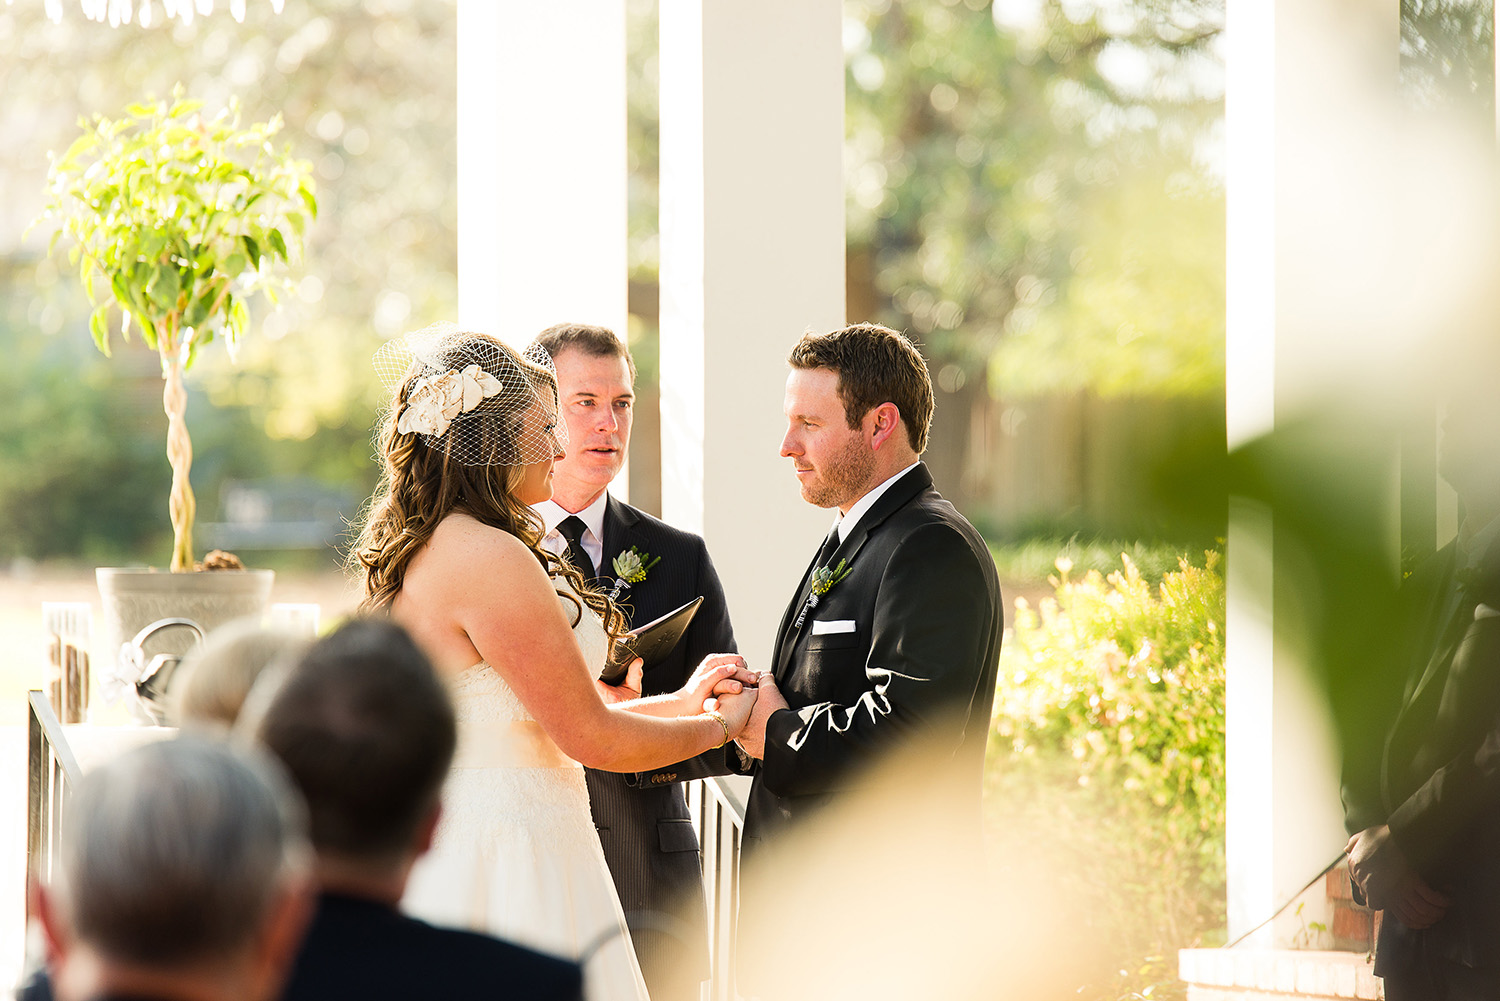 This ceremony was about 2 hours prior to sunset at the end of March. Spring had sprung at this point and there were leaves on the trees and the grass was green. The light was VERY harsh but we lucked out and the couple were under the shadow of the pillars in this beautiful ceremony space.